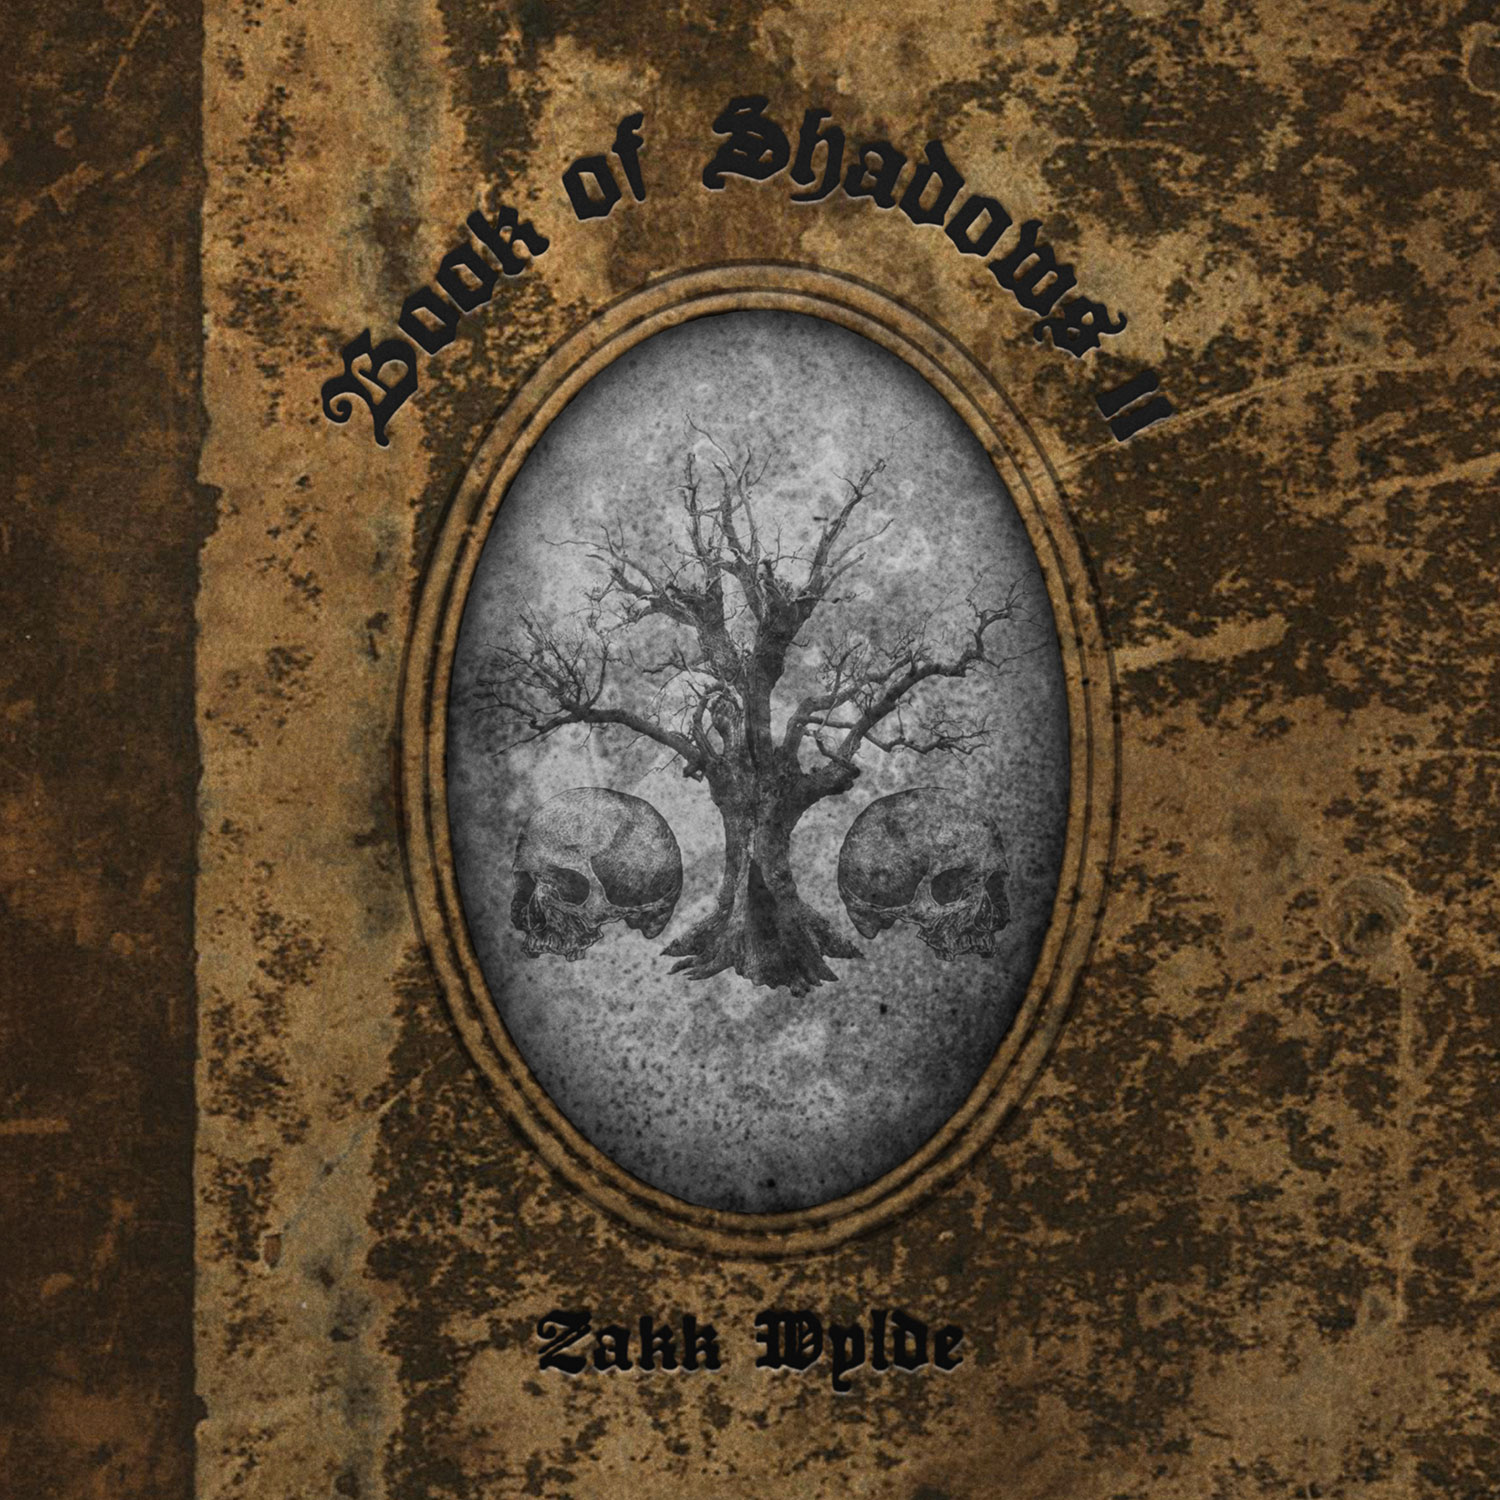 Book Of Shadows Zakk Wylde Blogspot